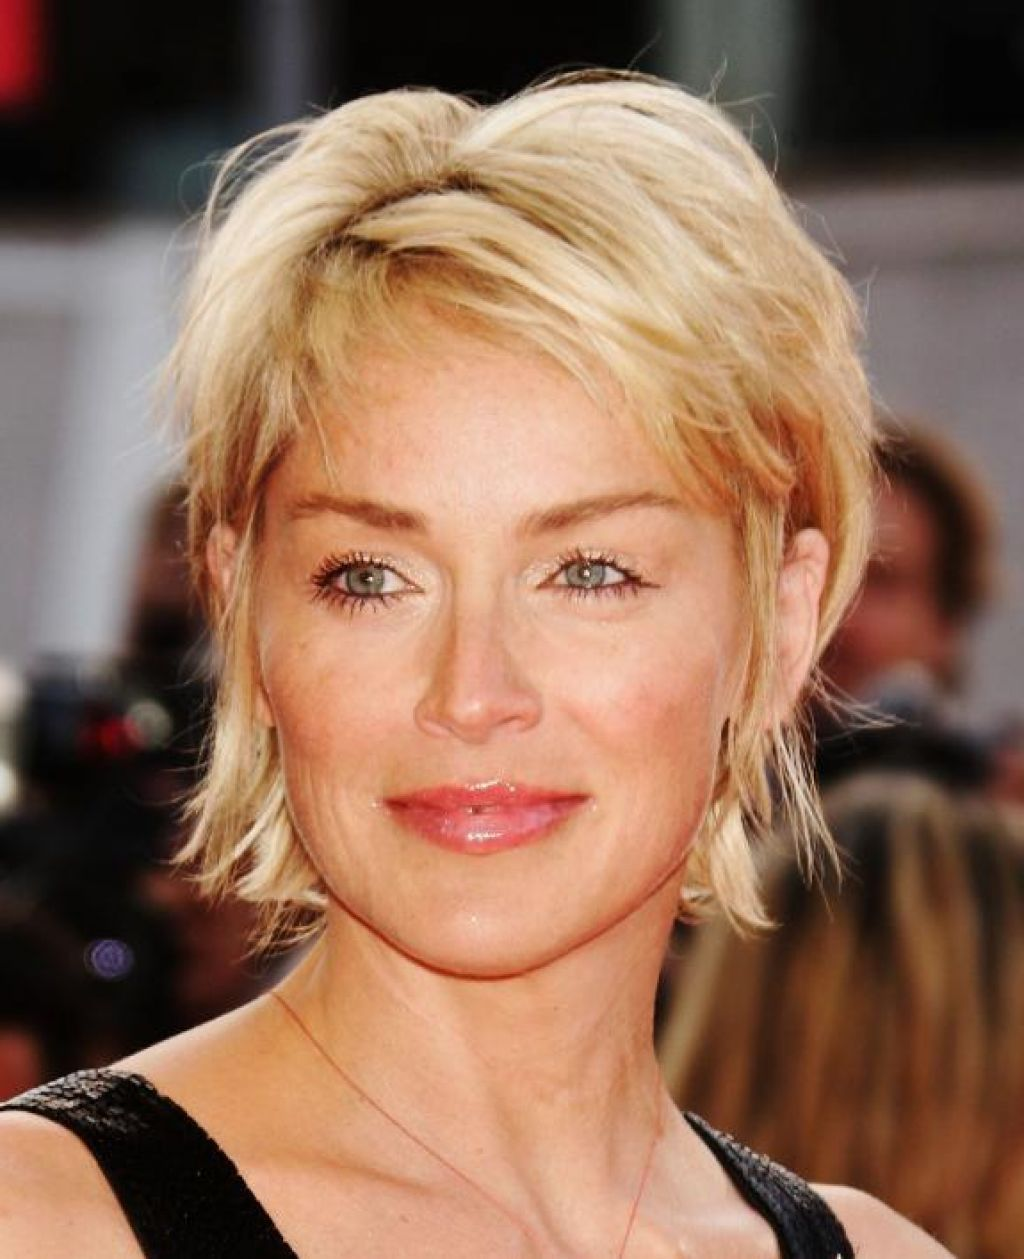 Image Result For Medium Length Hairstyles For 50 Year Old Women Bob Hairstyles For Fine Hair Hair Styles Thick Hair Styles